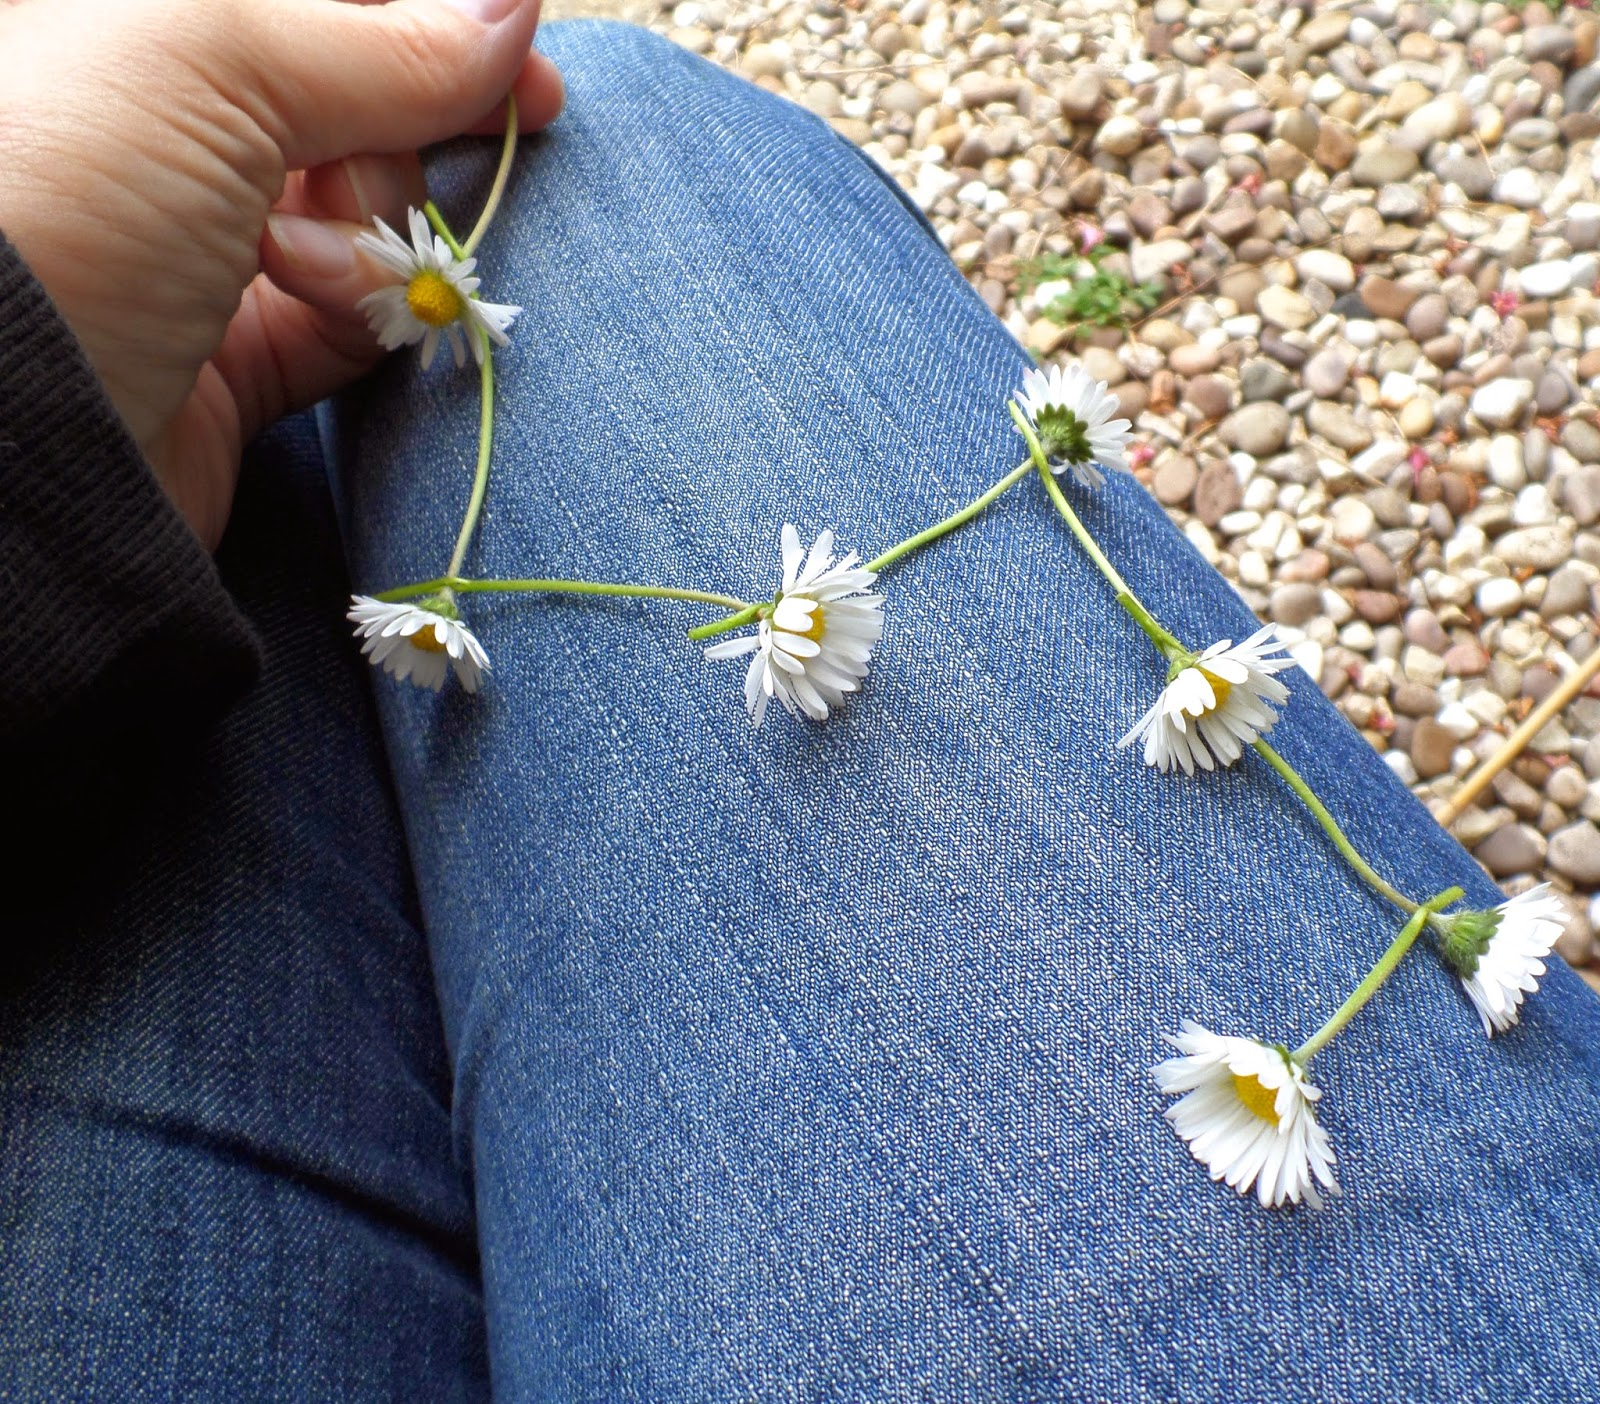 daisy chains